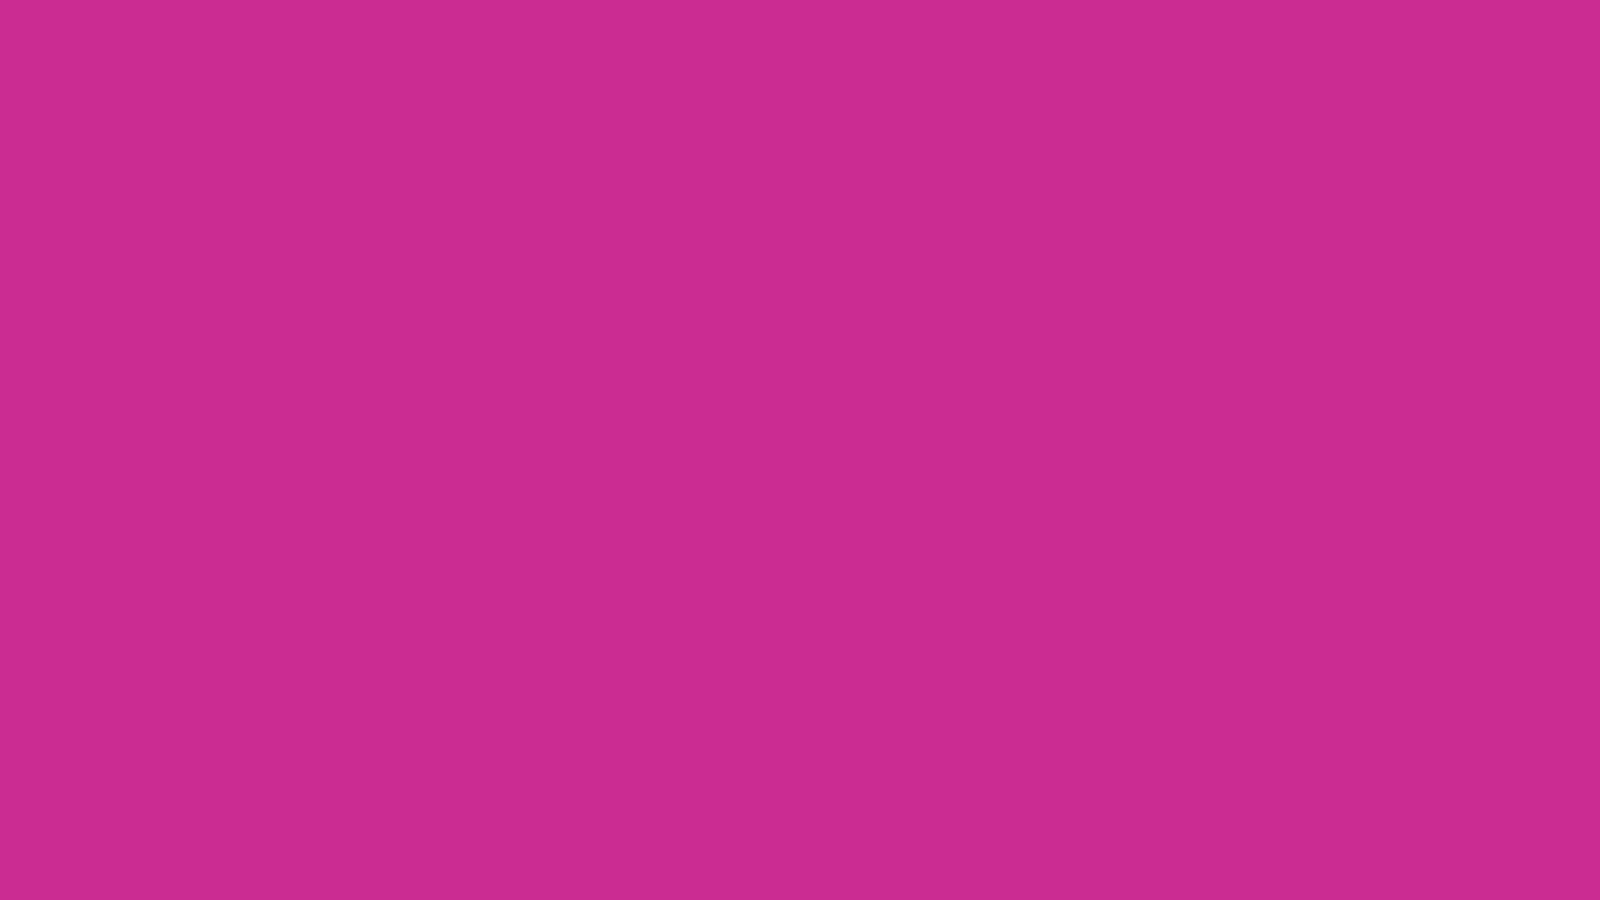 1600x900 Royal Fuchsia Solid Color Background